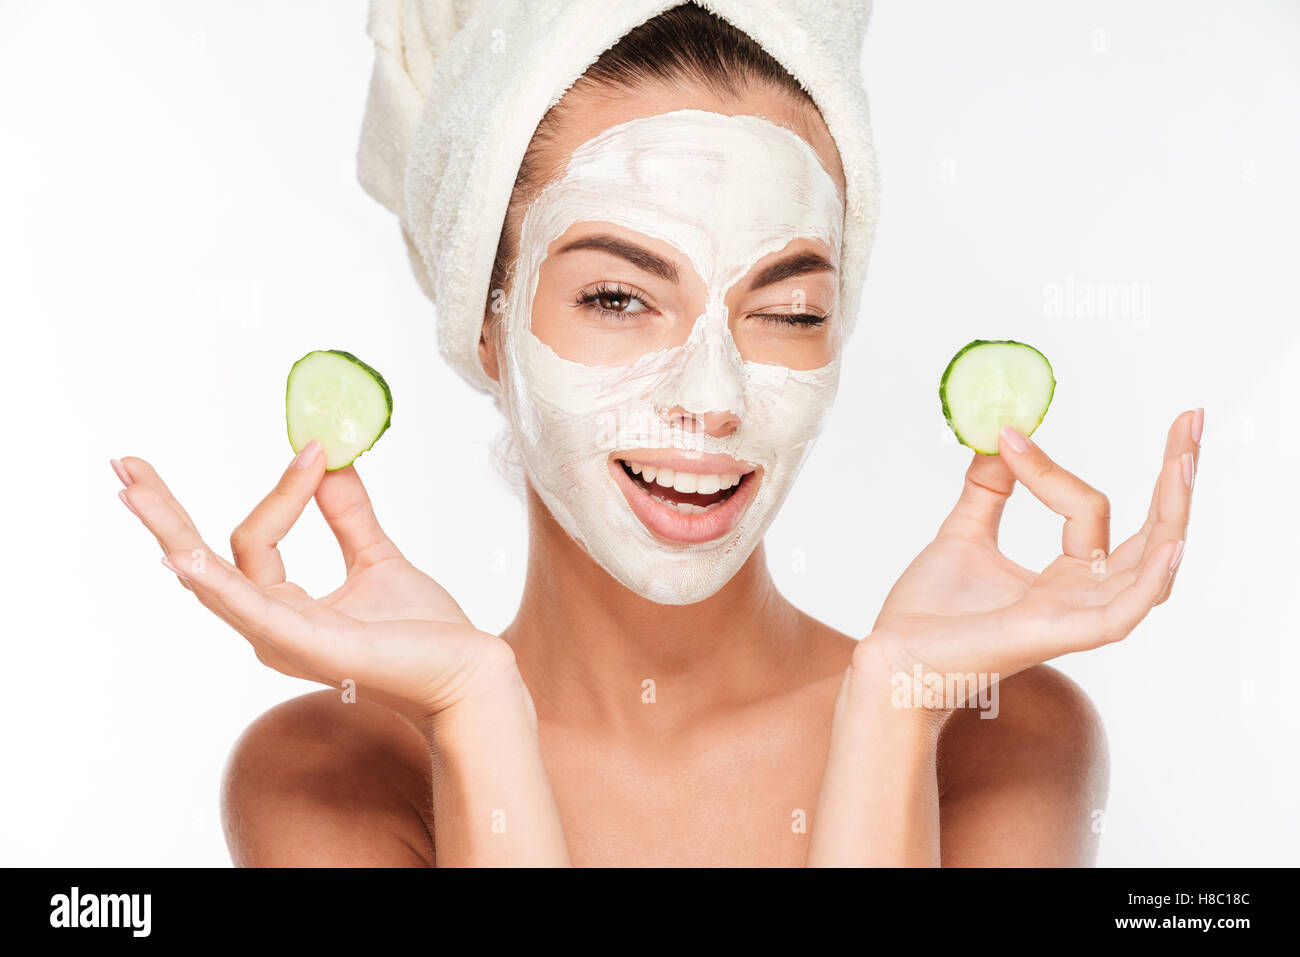 Young woman with clay facial mask holding cucumber slices isolated on white background - Stock Image